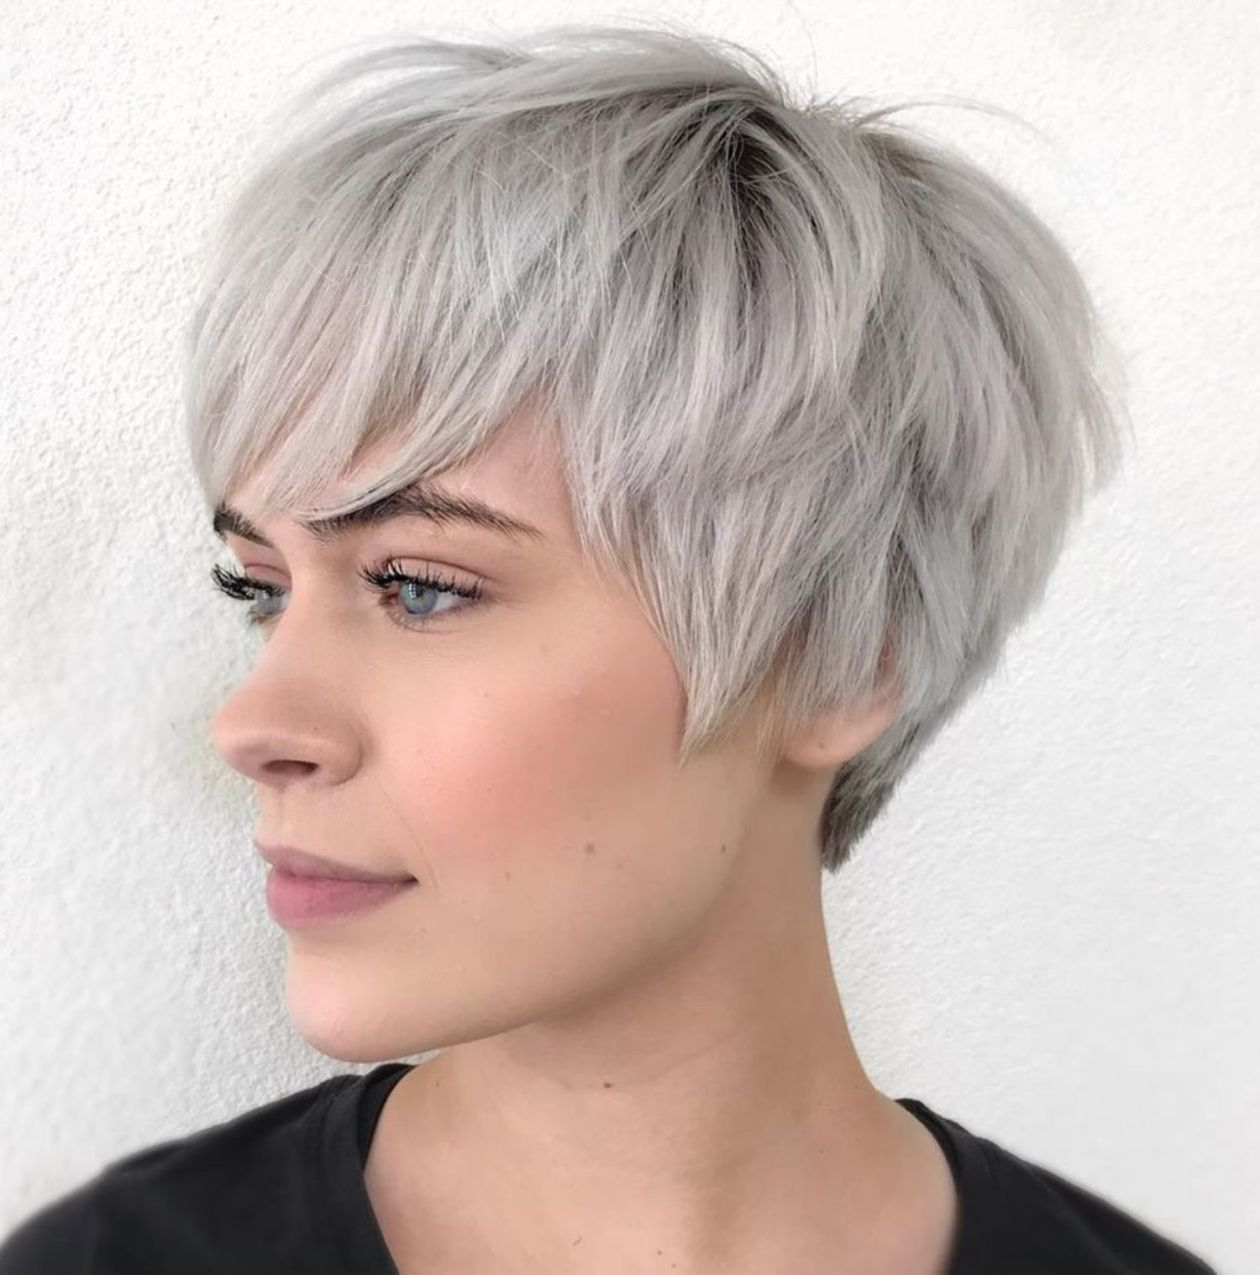 Choppy Pixie For Thick Coarse Hair In 2020 Pixie Haircut For Thick Hair Haircut For Thick Hair Thick Hair Styles